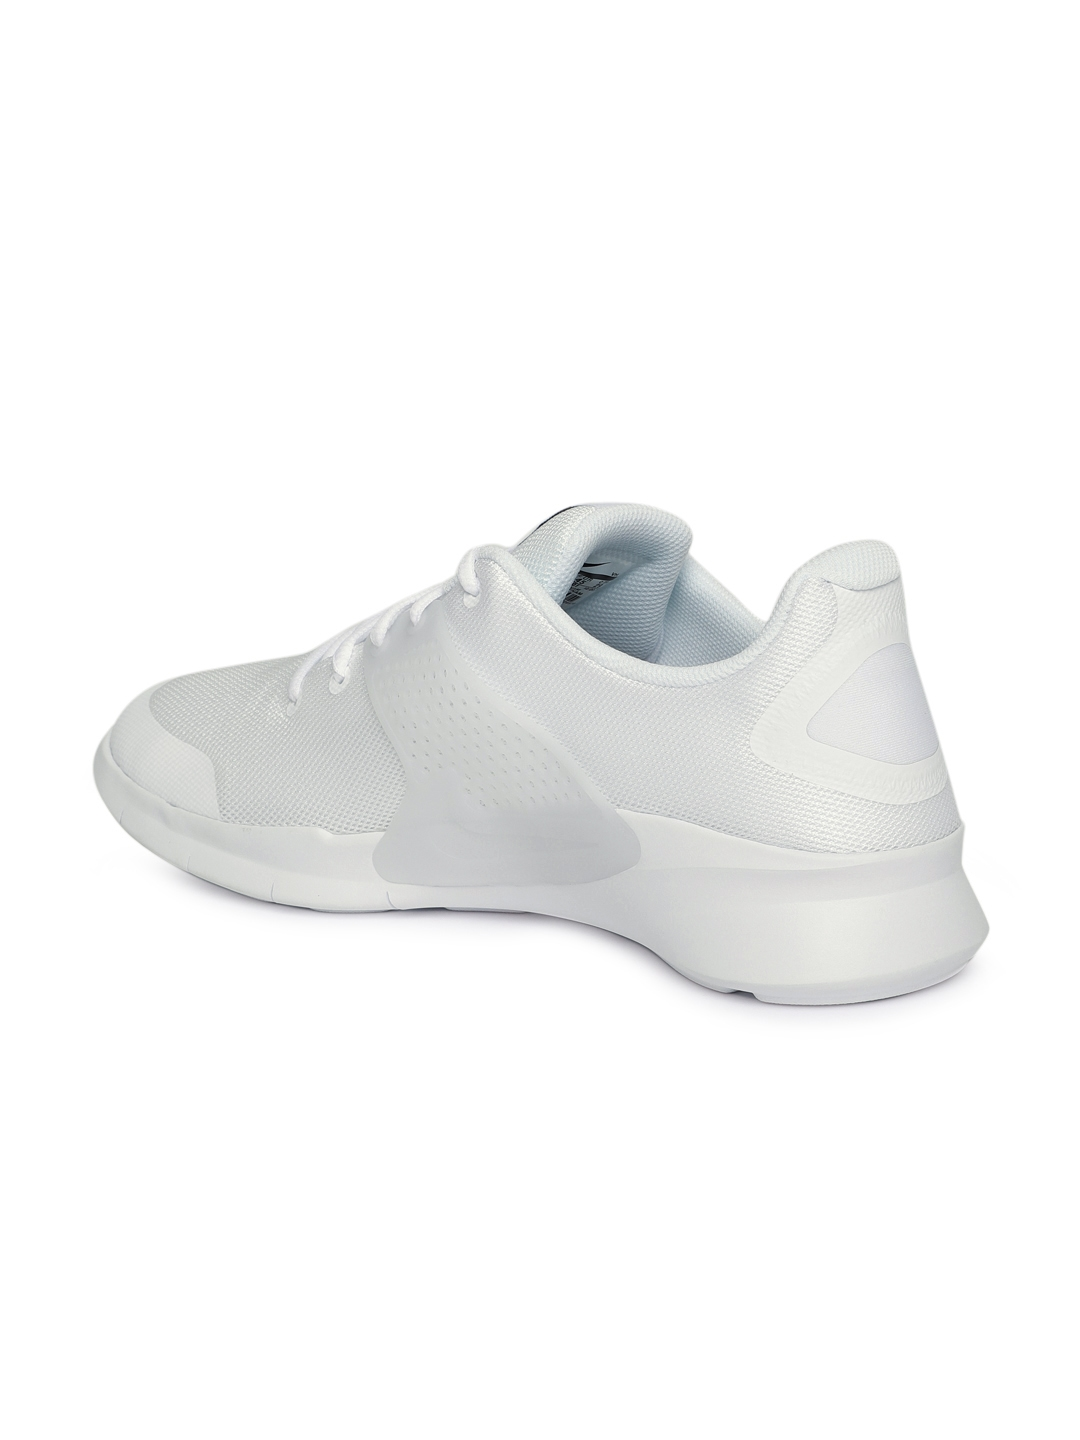 08ee879f7a48 Buy Nike Men White Arrowz Sneakers - Casual Shoes for Men 4030144 ...